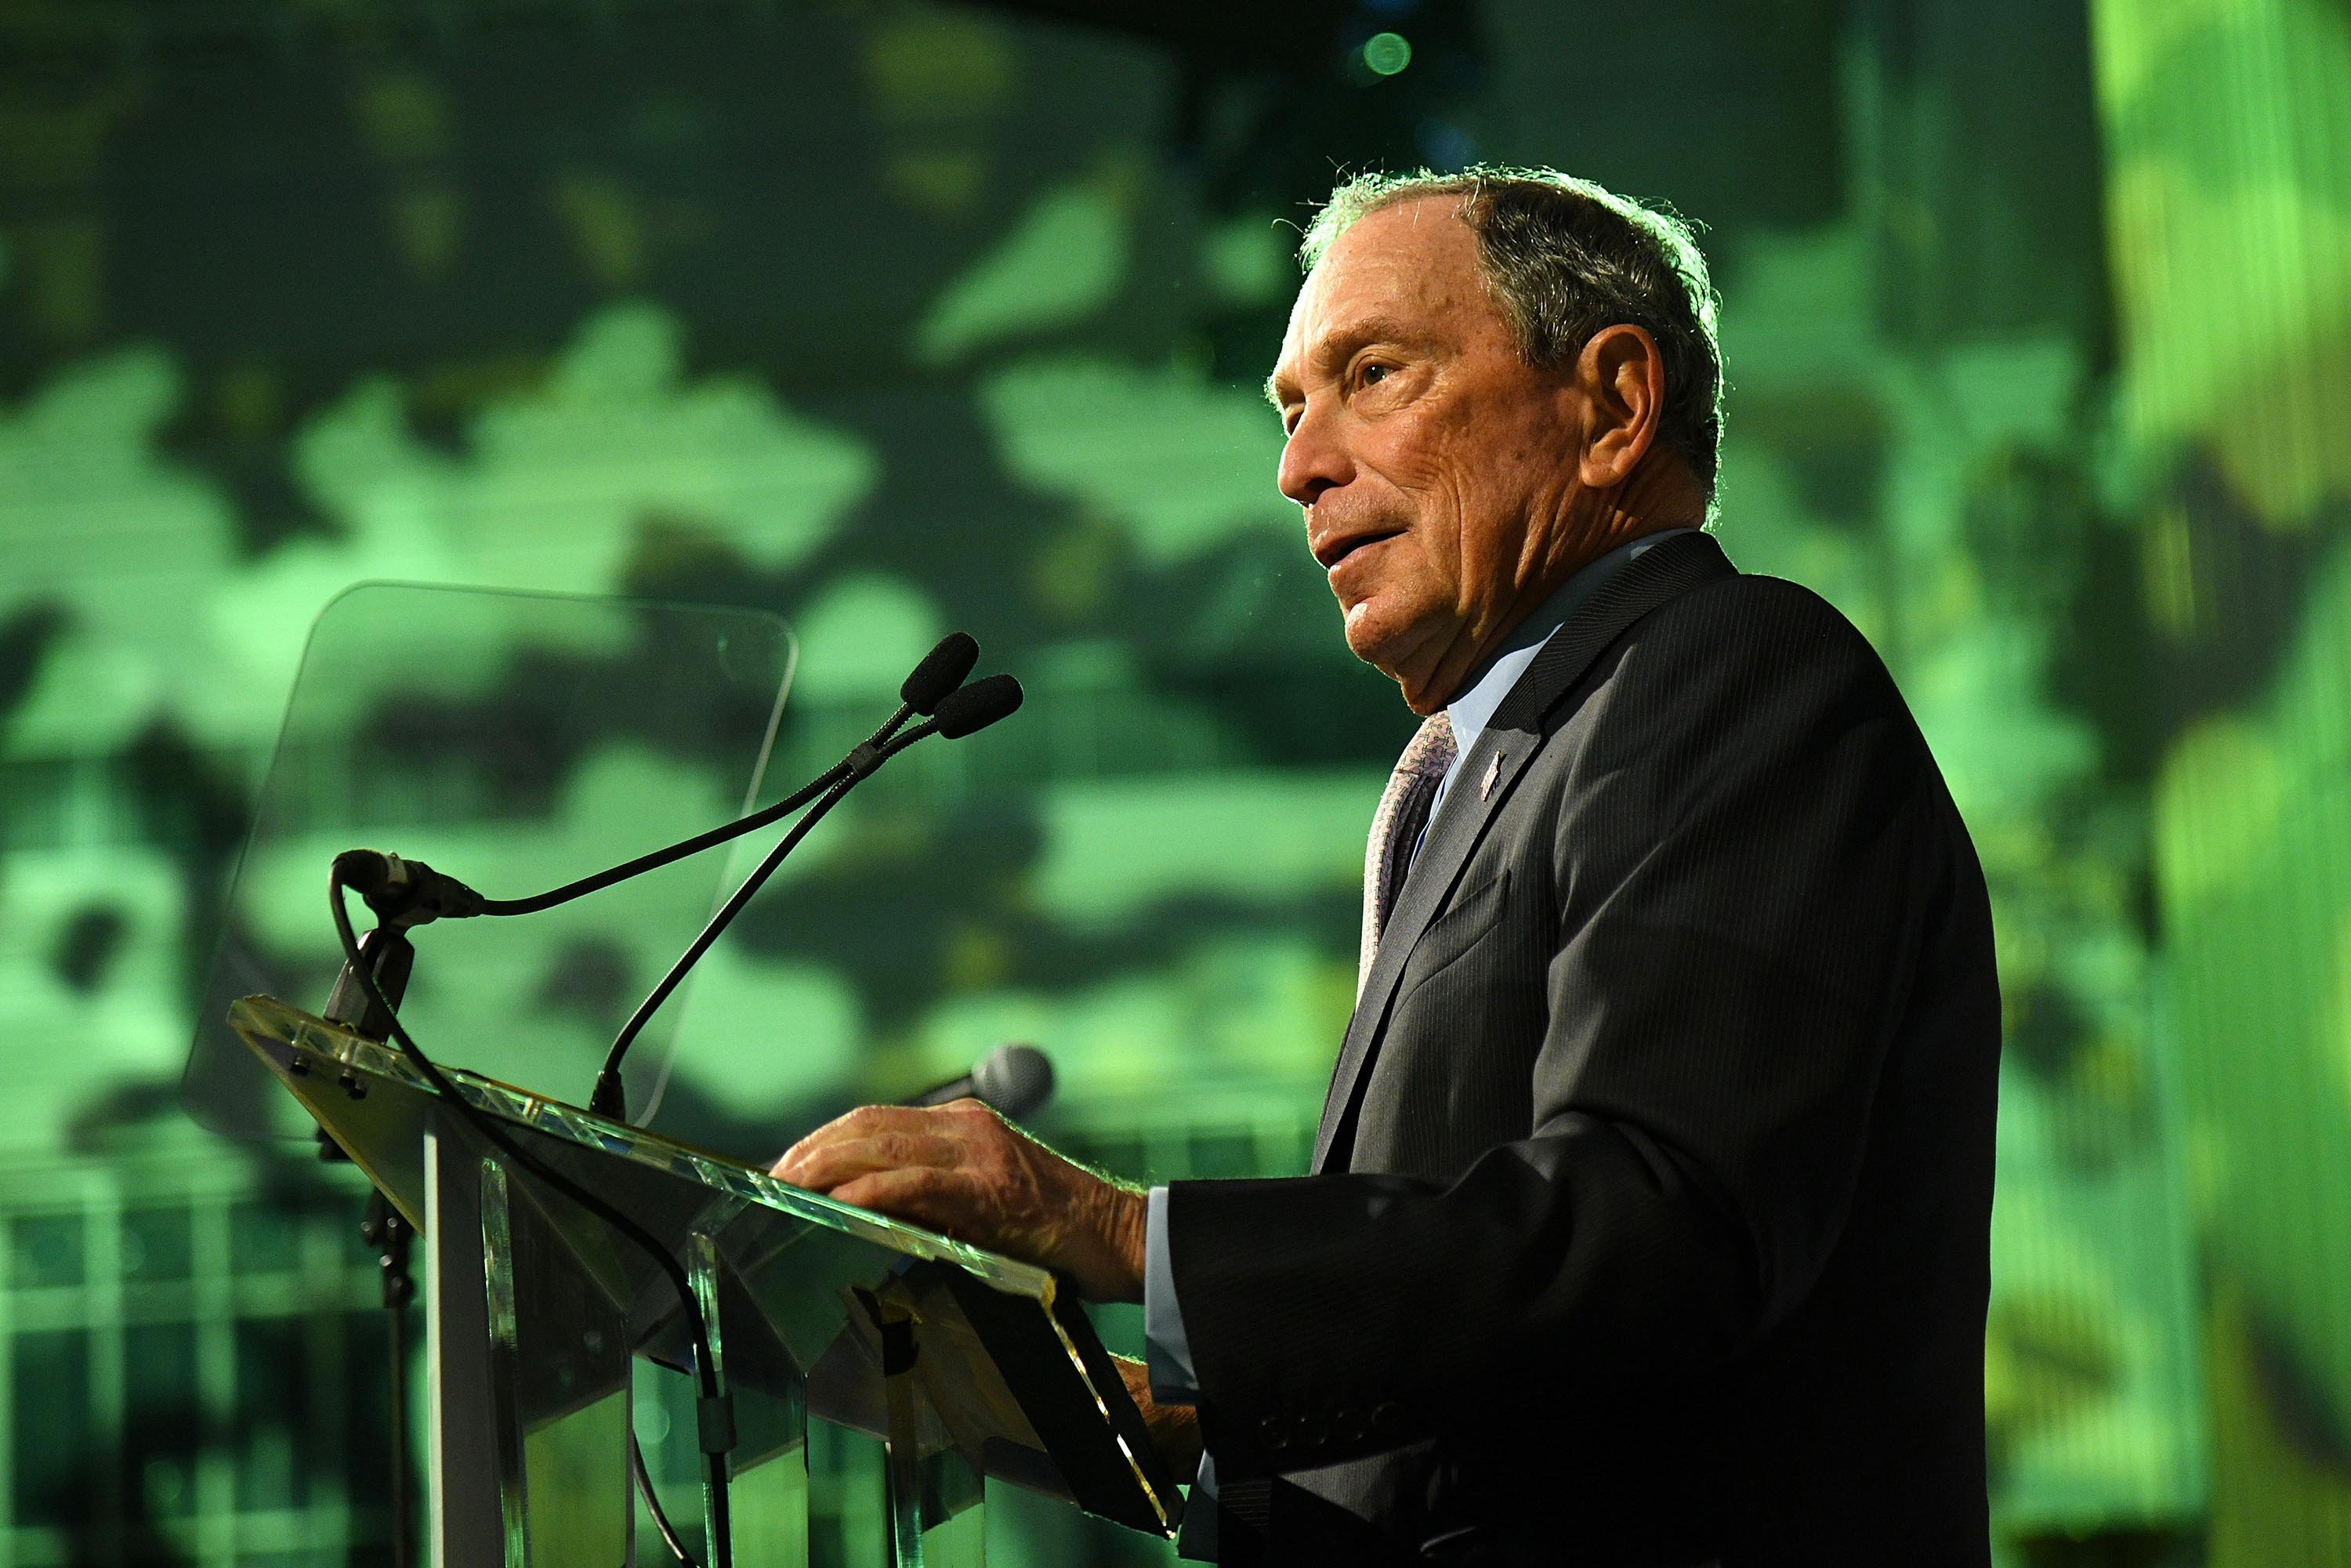 Bloomberg plans to spend $100 million on anti-Trump ads in key states